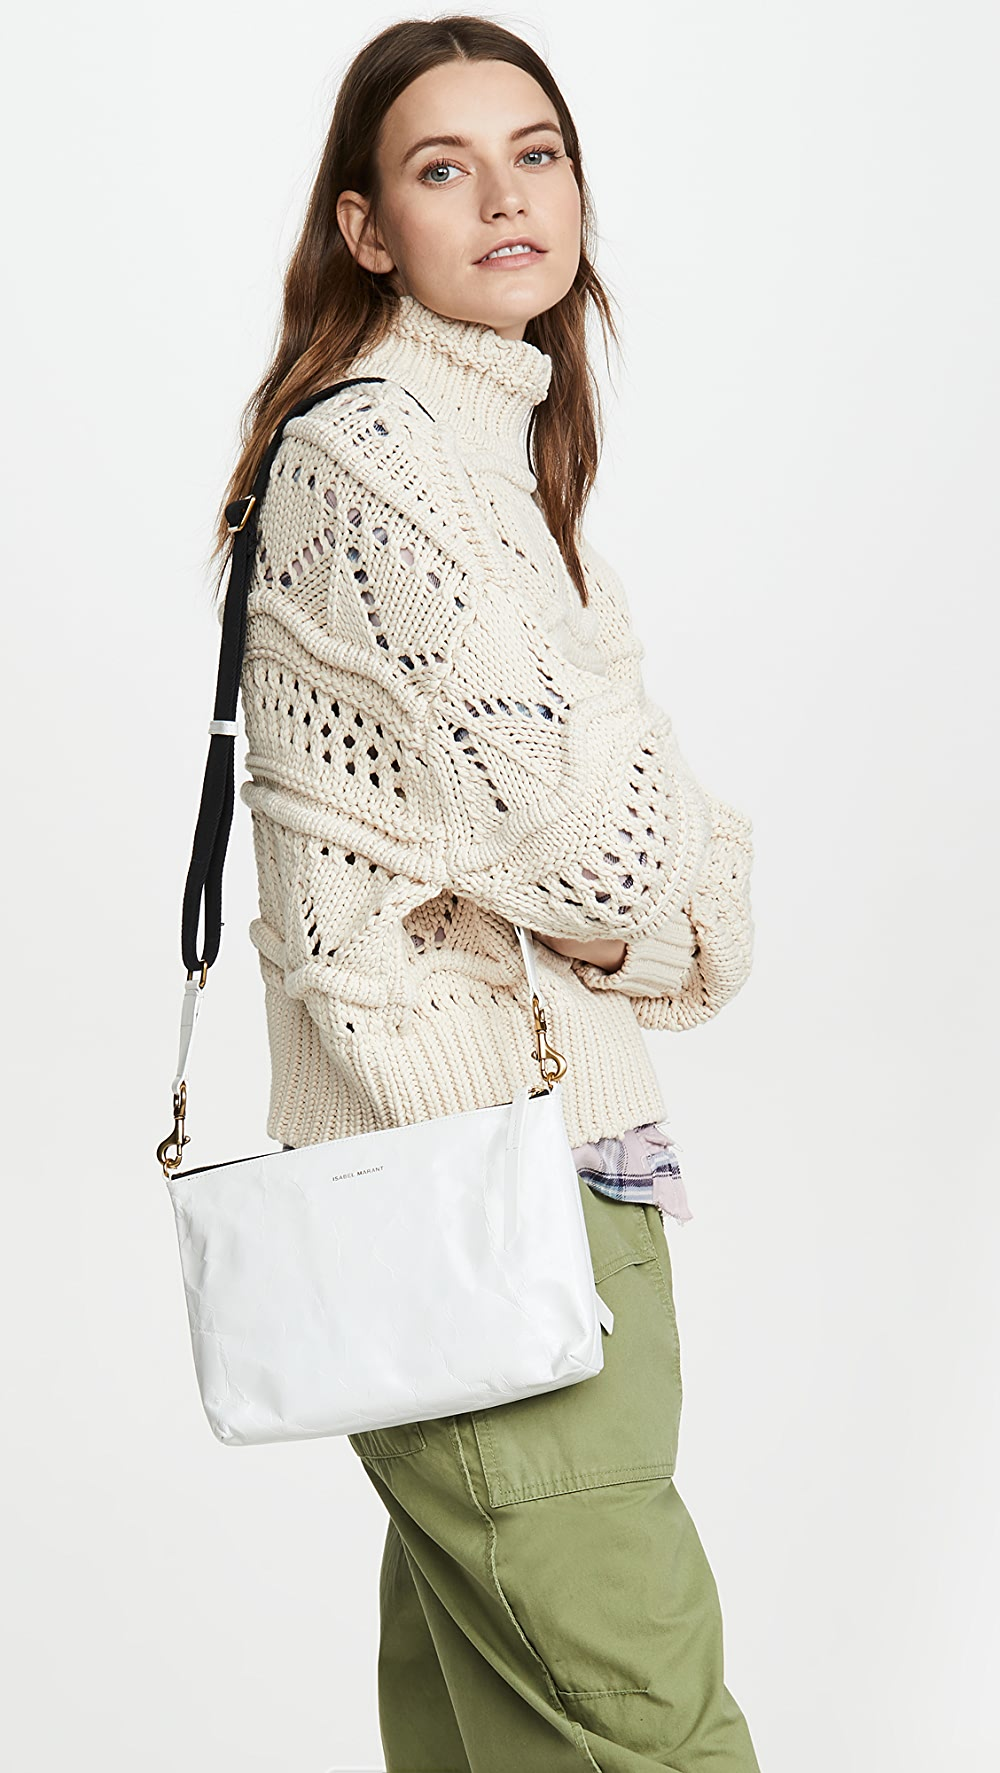 100% Quality Isabel Marant - Nessah New Bag Pure And Mild Flavor